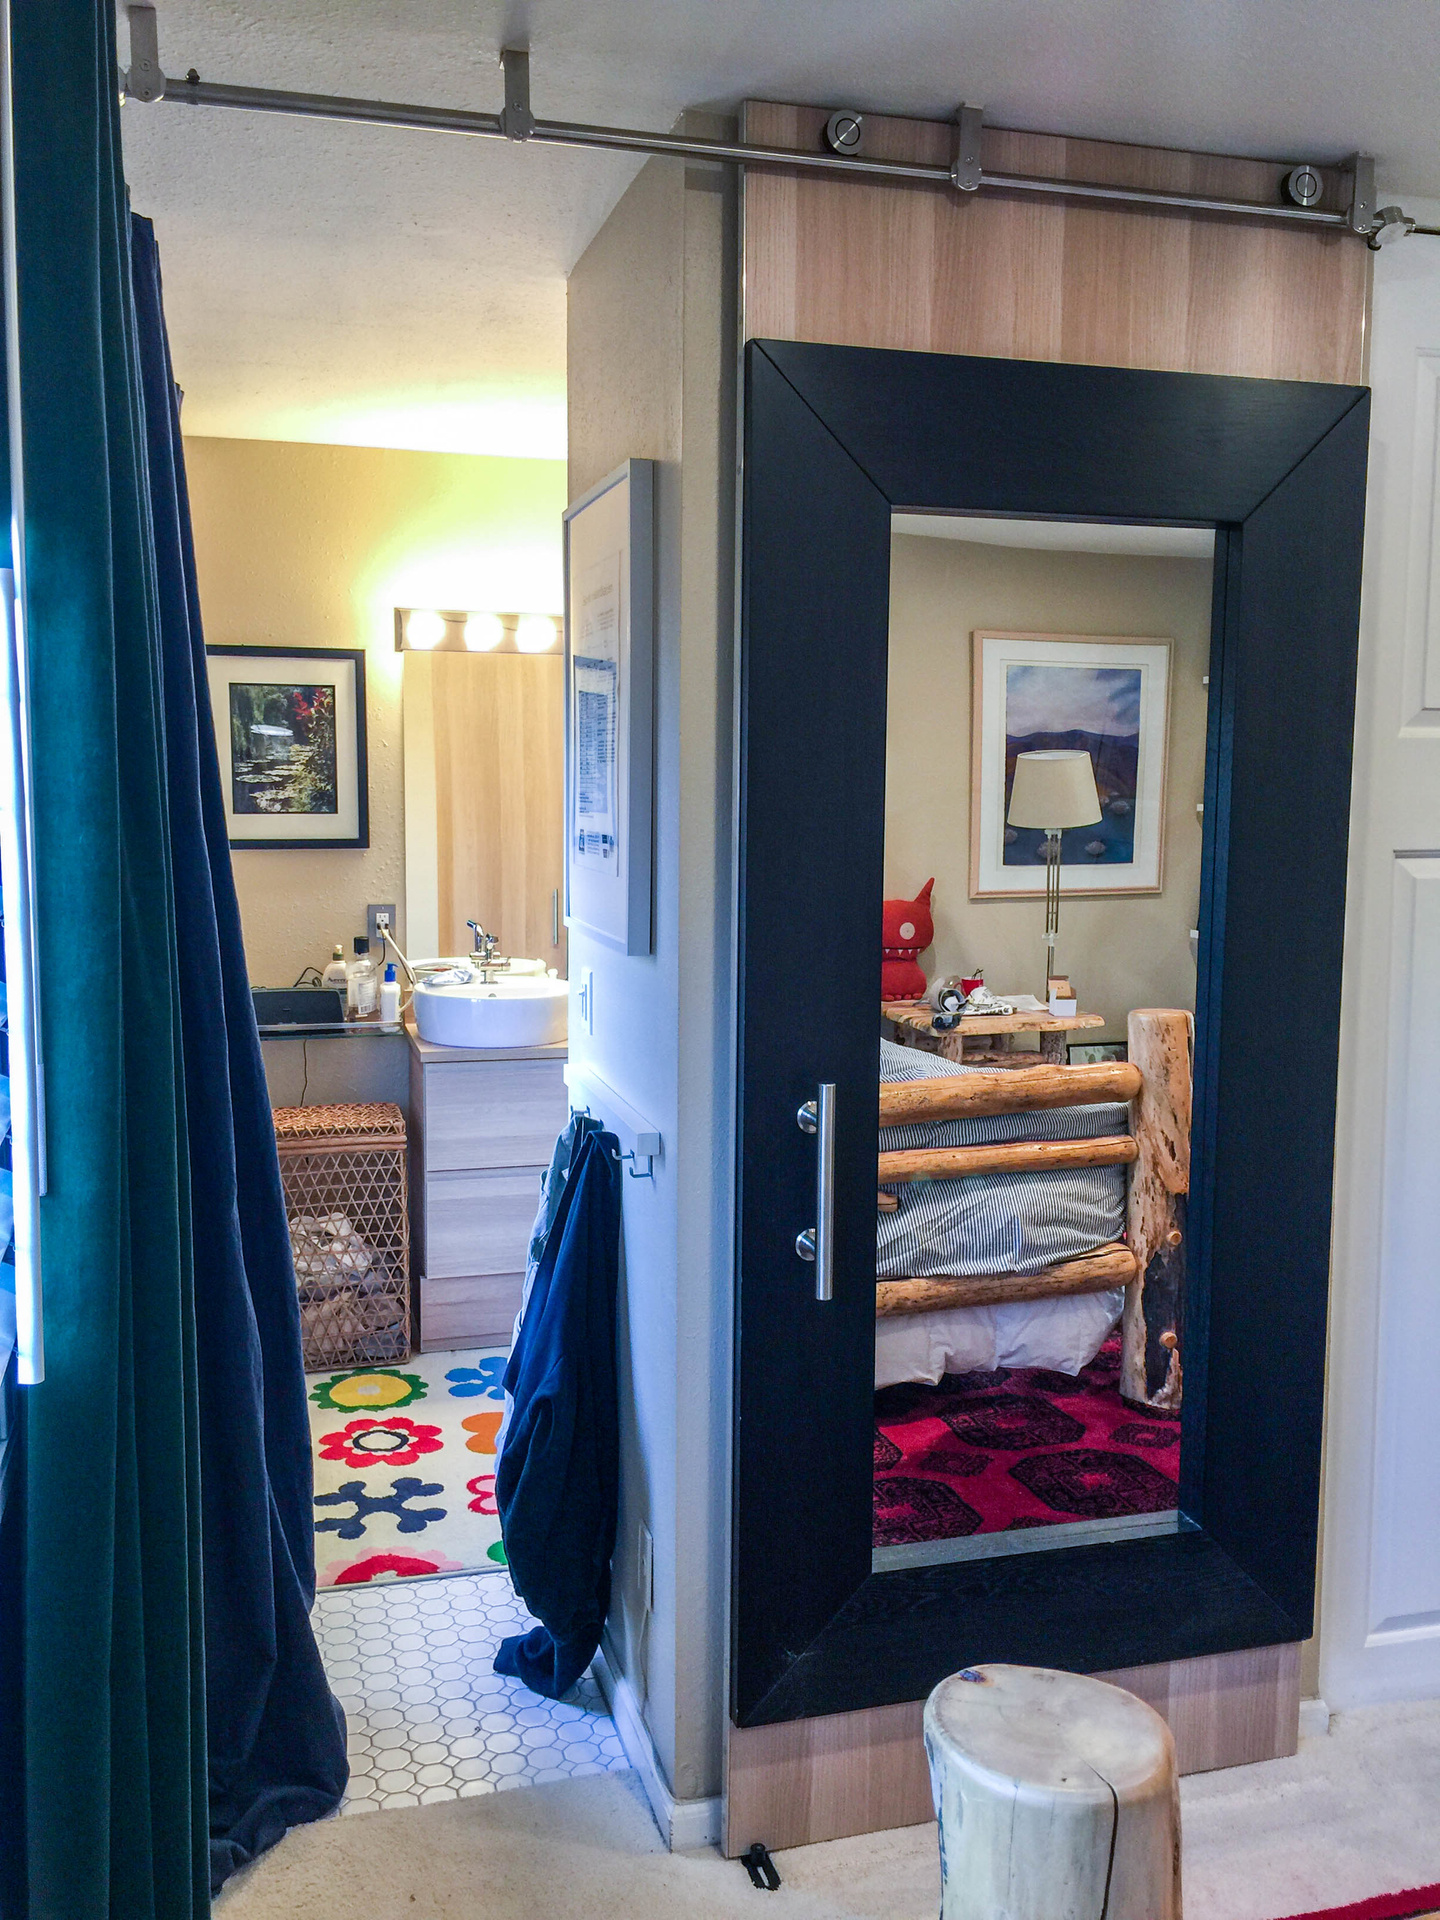 Ikea Wardrobe Leaning To One Side 2018apr Ikea Mirror Barn Door By Willis Chung